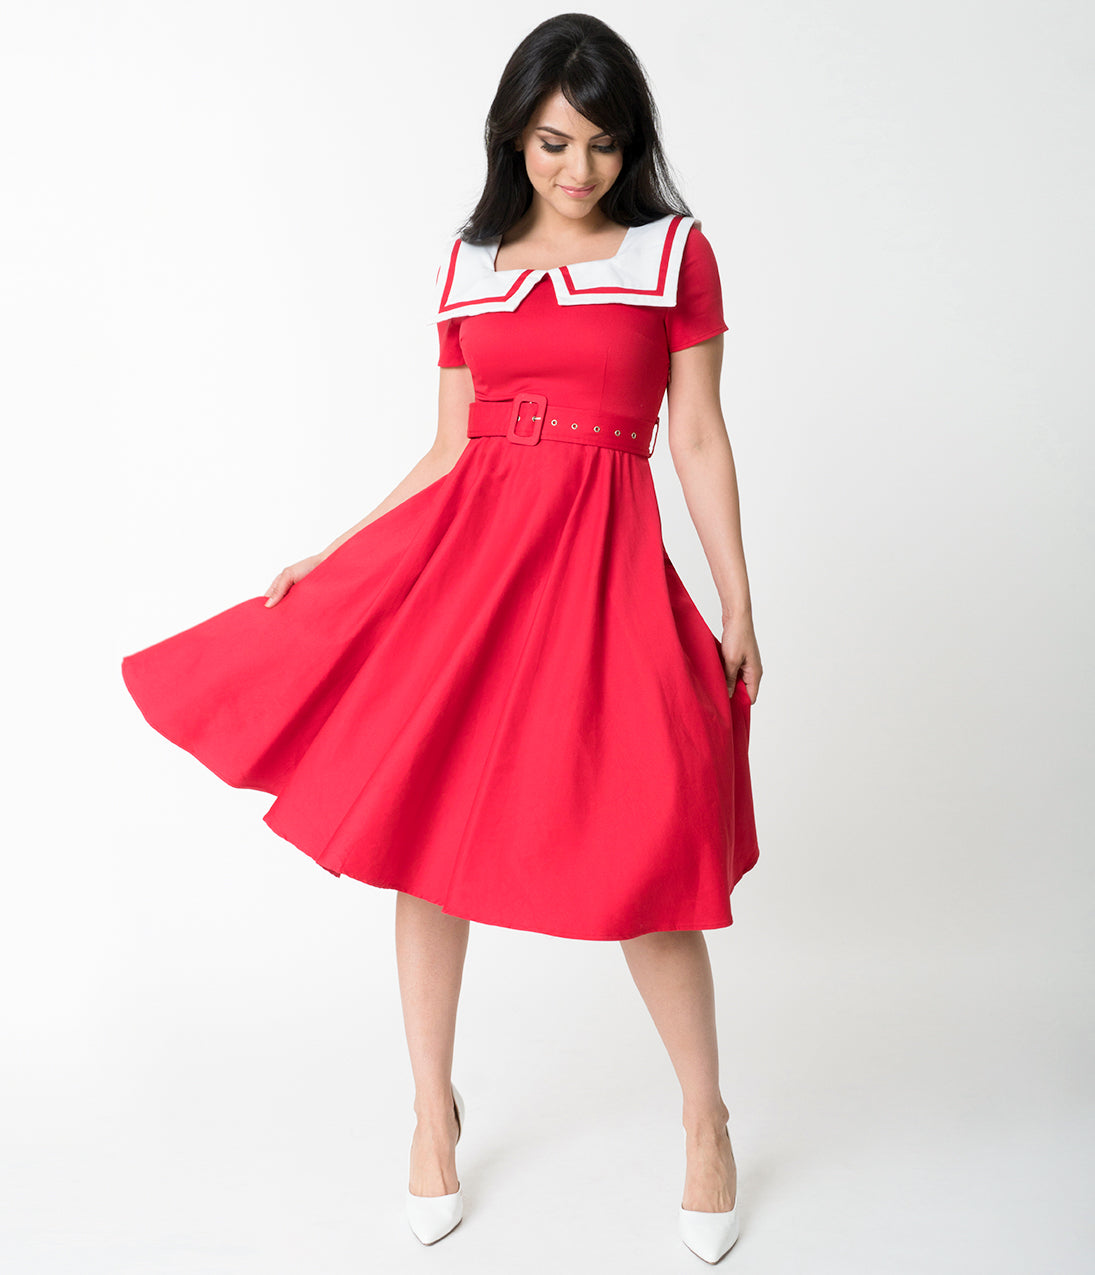 Fifties Dresses : 1950s Style Swing to Wiggle Dresses Retro Red Sailor Collar Short Sleeve Swing Dress $21.00 AT vintagedancer.com